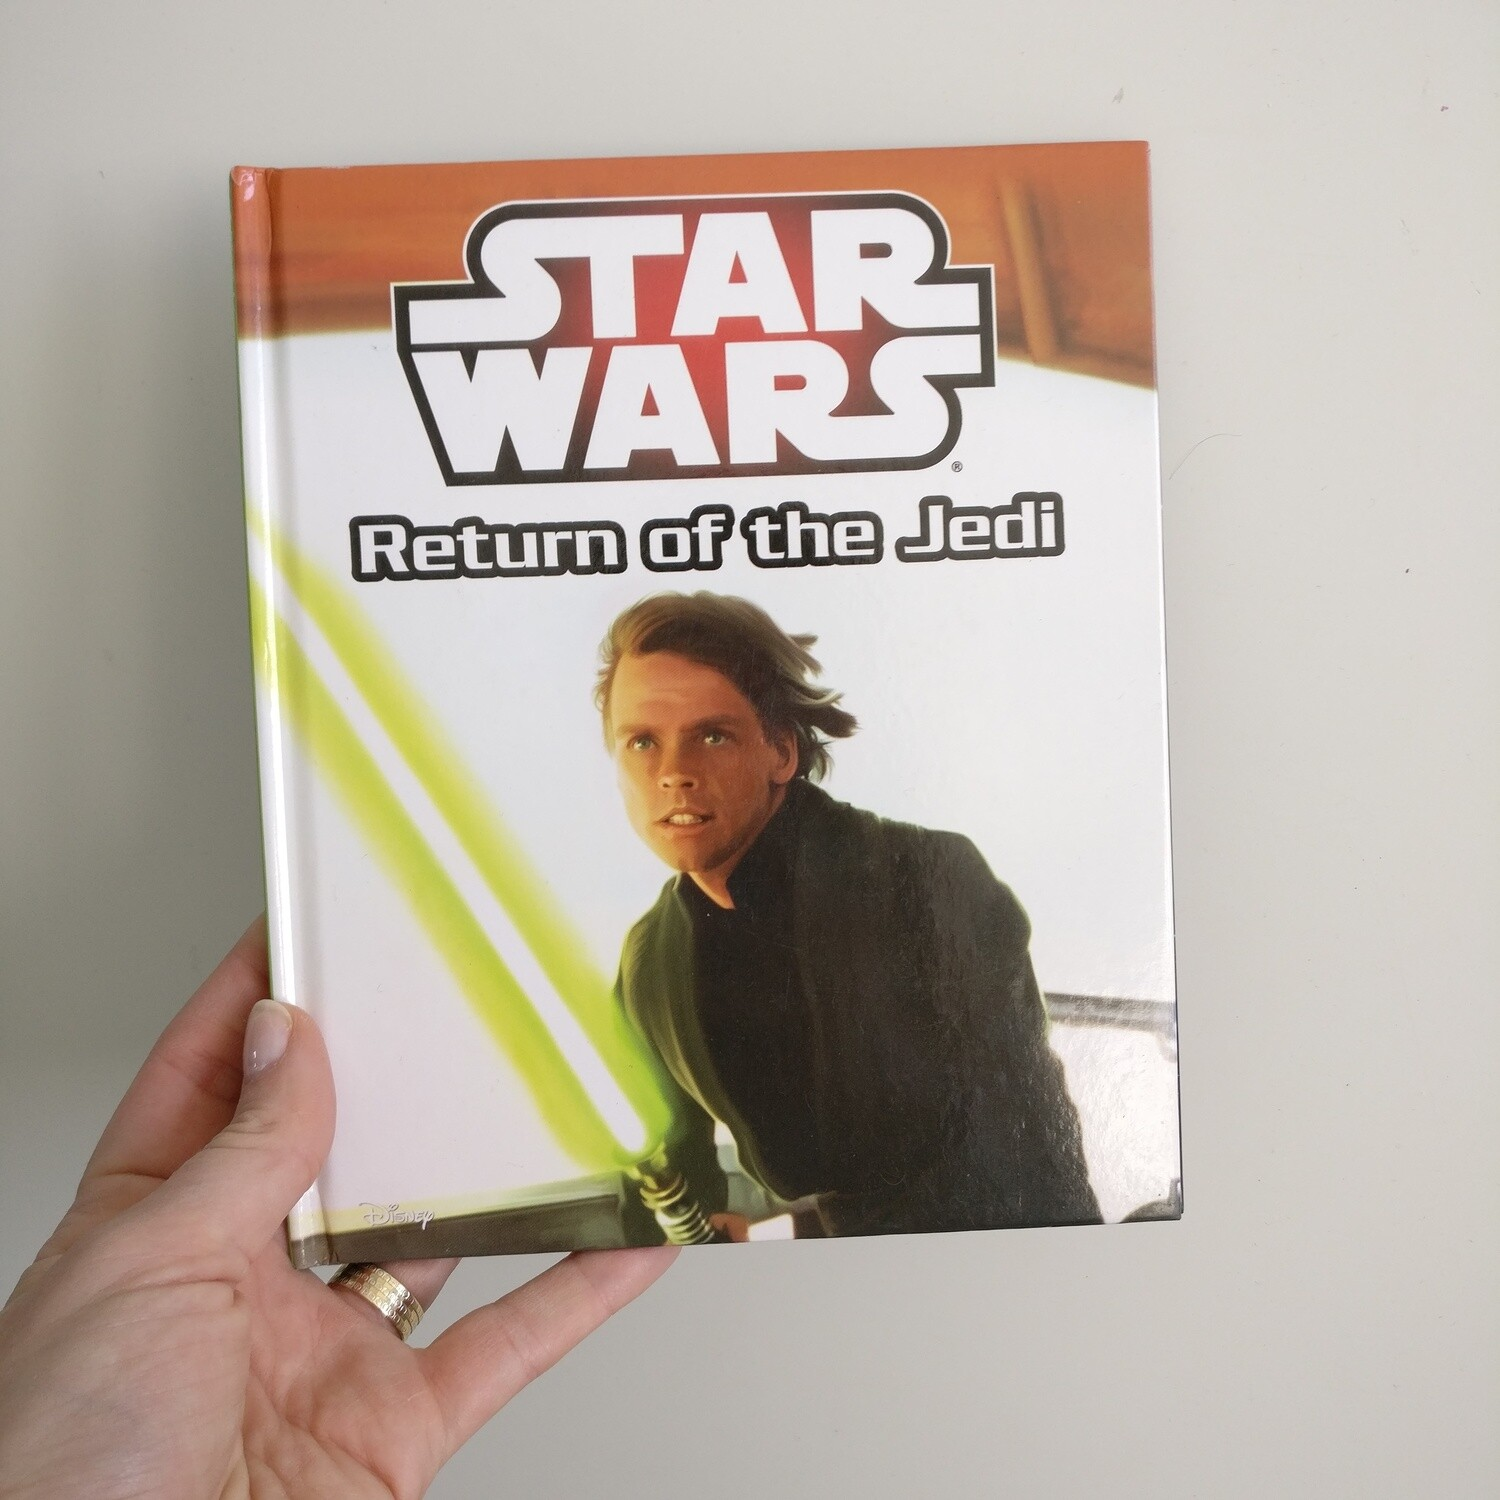 Star Wars Notebooks - choice of covers